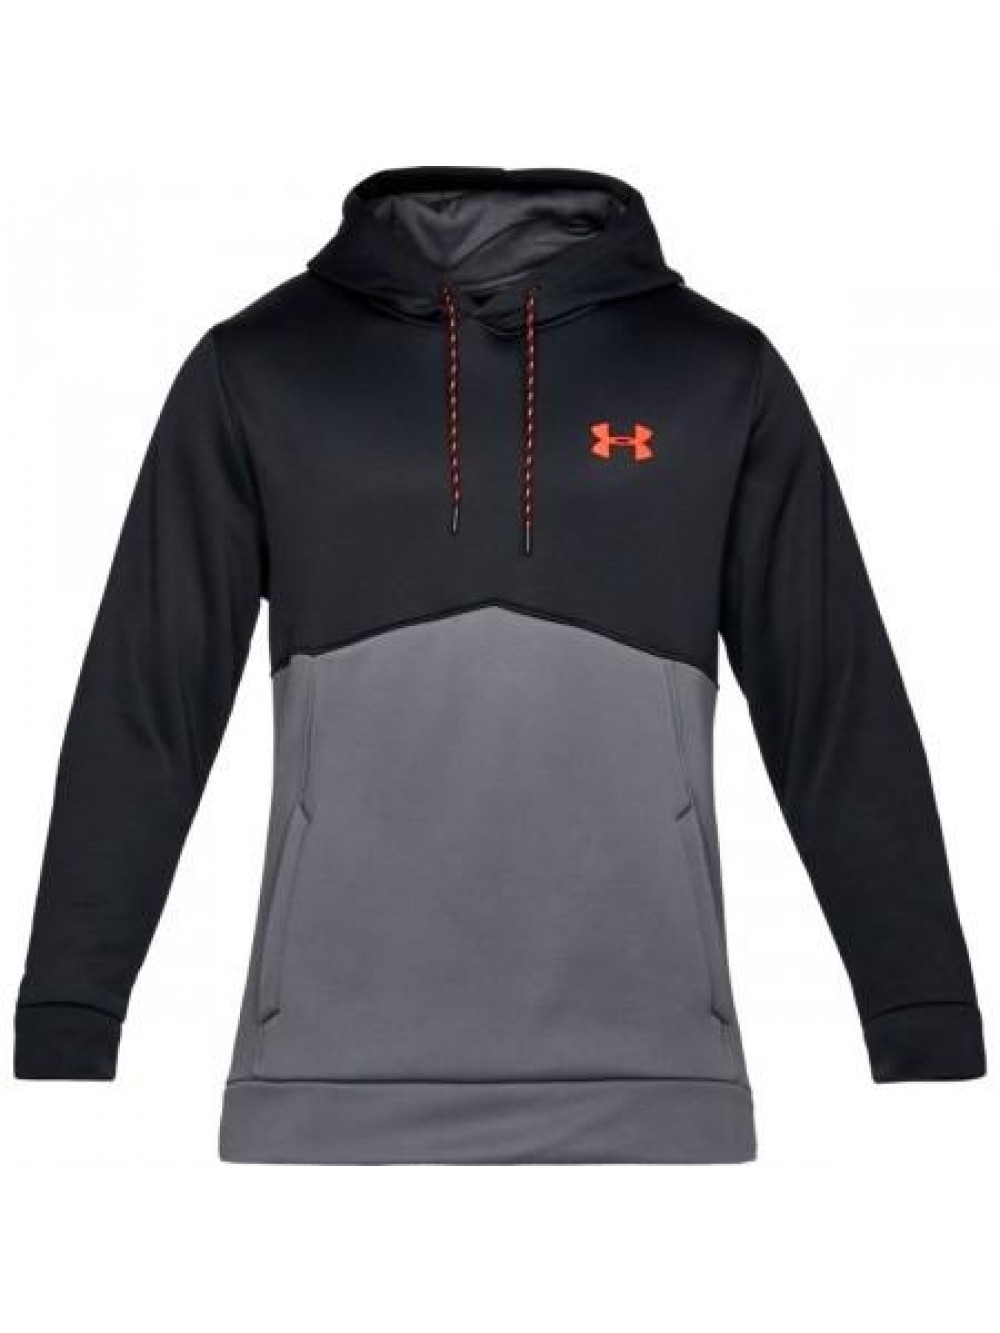 Herren Sweatshirt Under Armour AF Icon Solid Grau-Schwarz